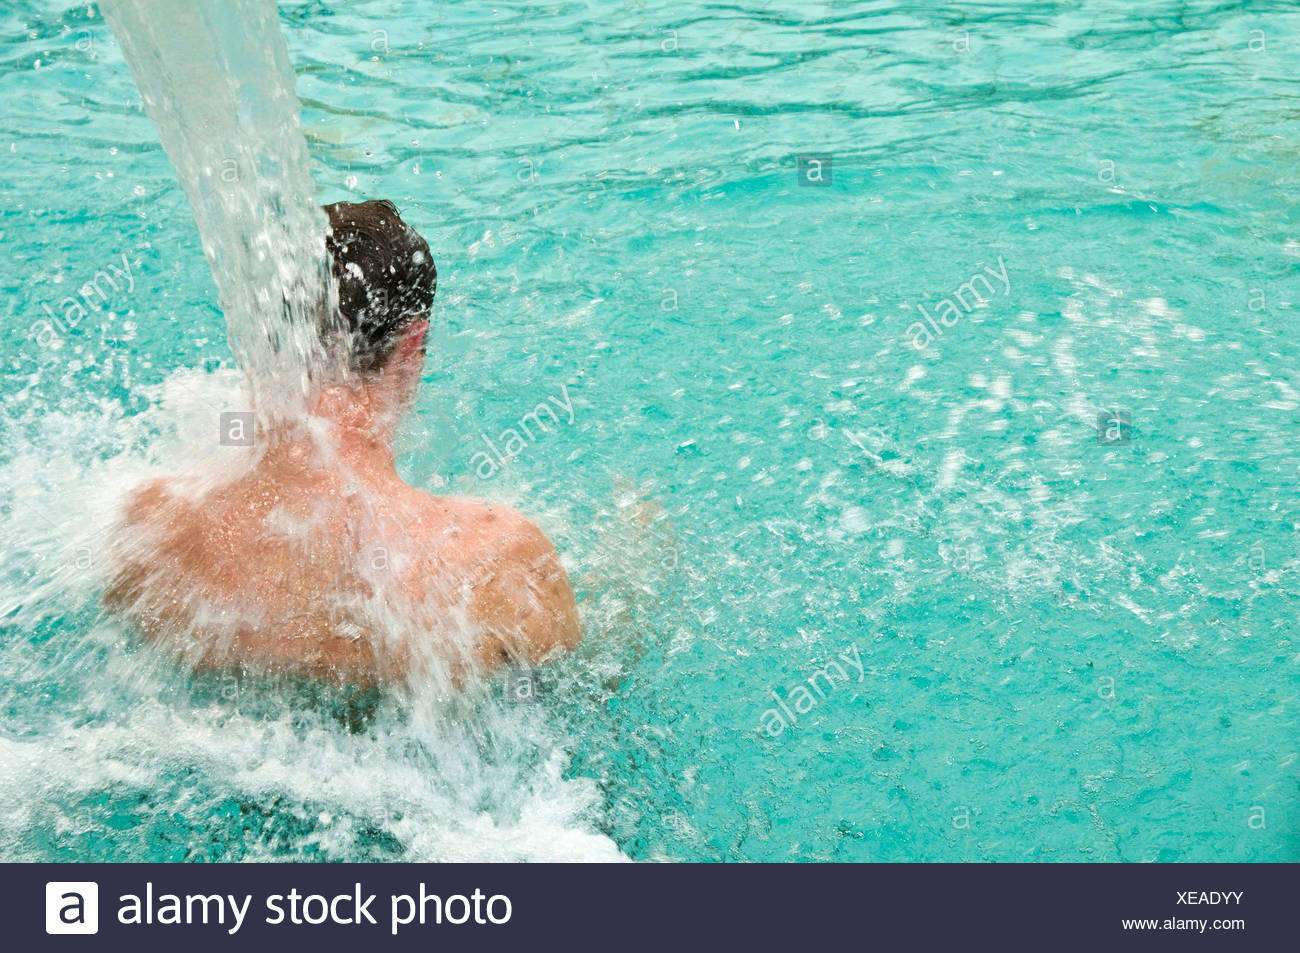 Man in swimming pool from behind with massaging jet of water Stock ...